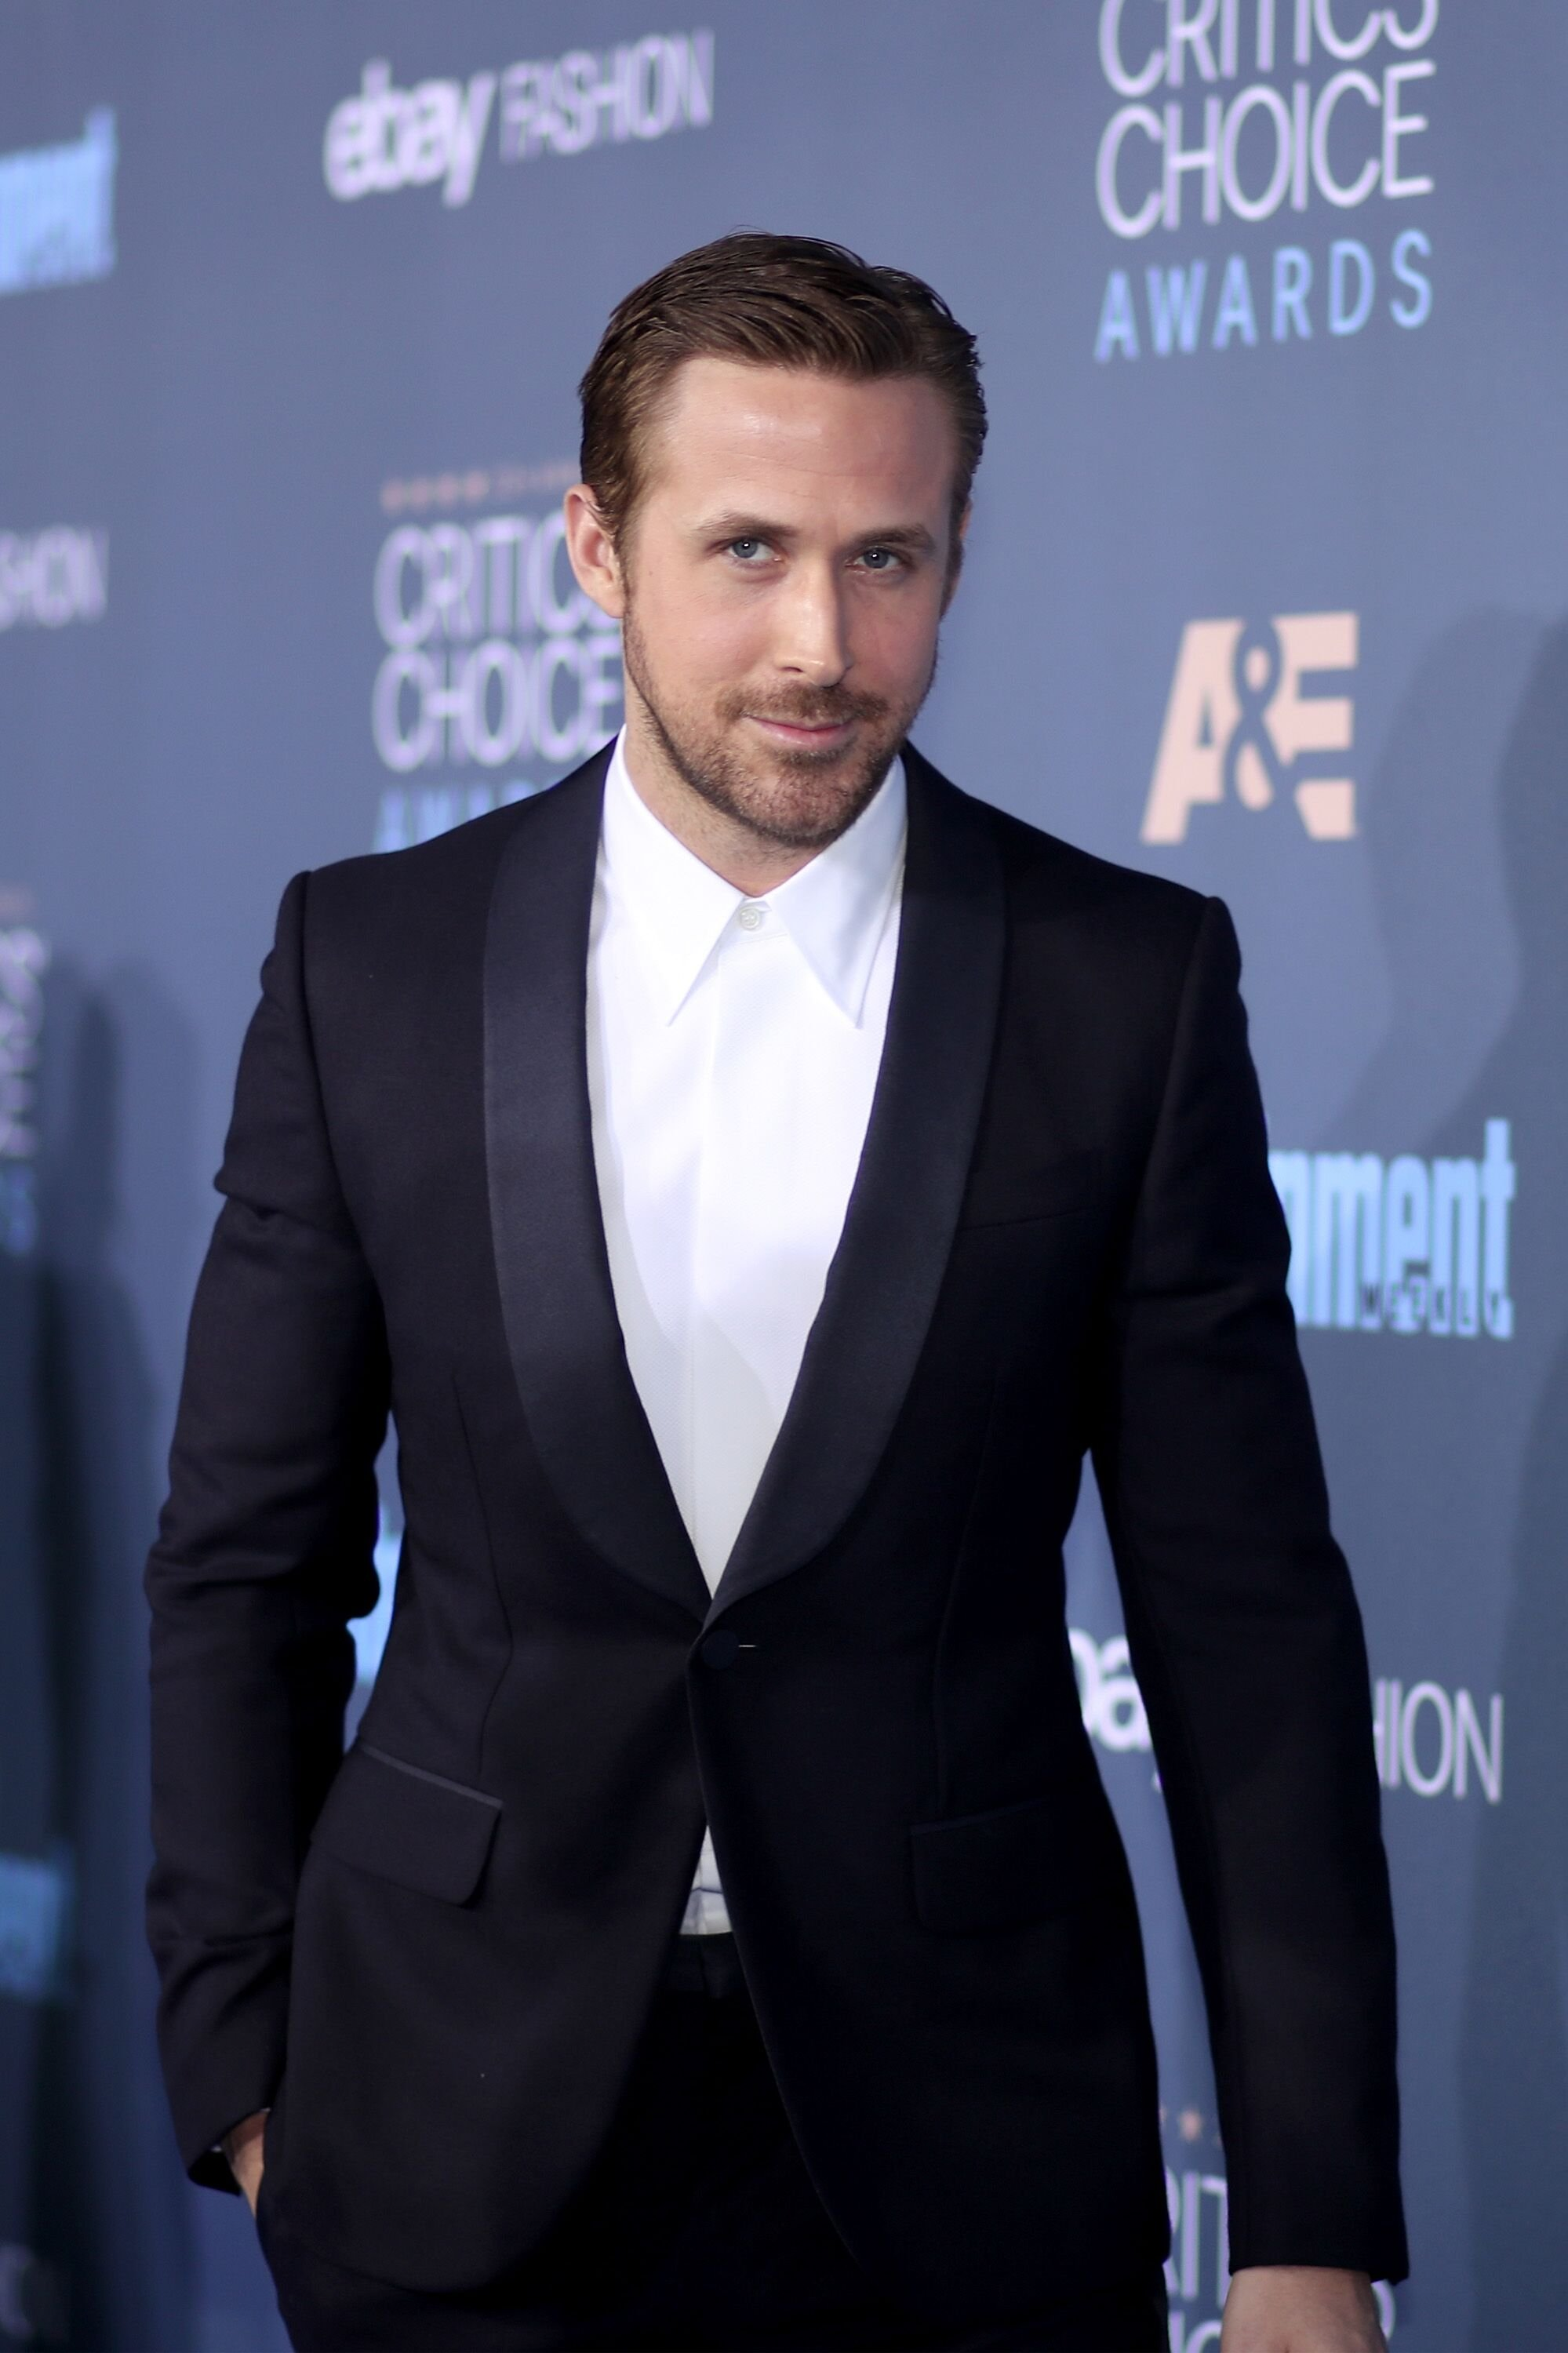 Ryan Gosling attends The 22nd Annual Critics' Choice Awards at Barker Hangar. | Source: Getty Images